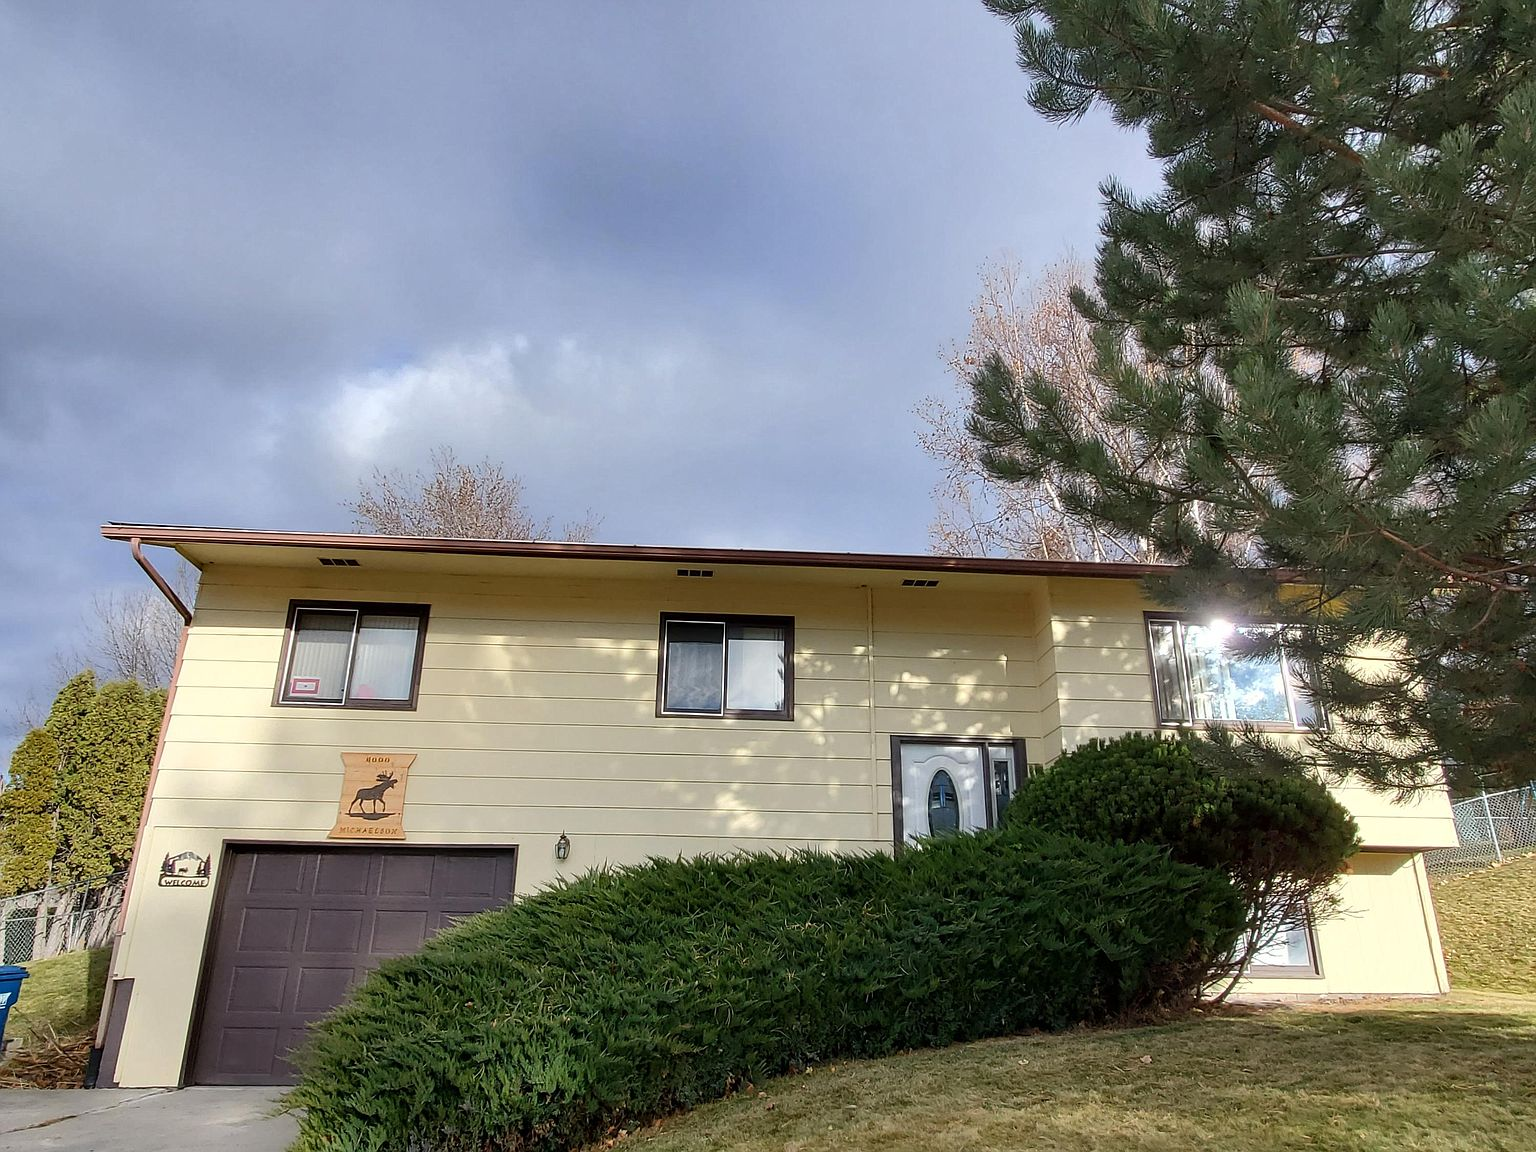 6000 Mainview Dr Missoula Mt 59803 Zillow Zillow has 365 homes for sale in missoula mt. 6000 mainview dr missoula mt 59803 mls 22018495 zillow